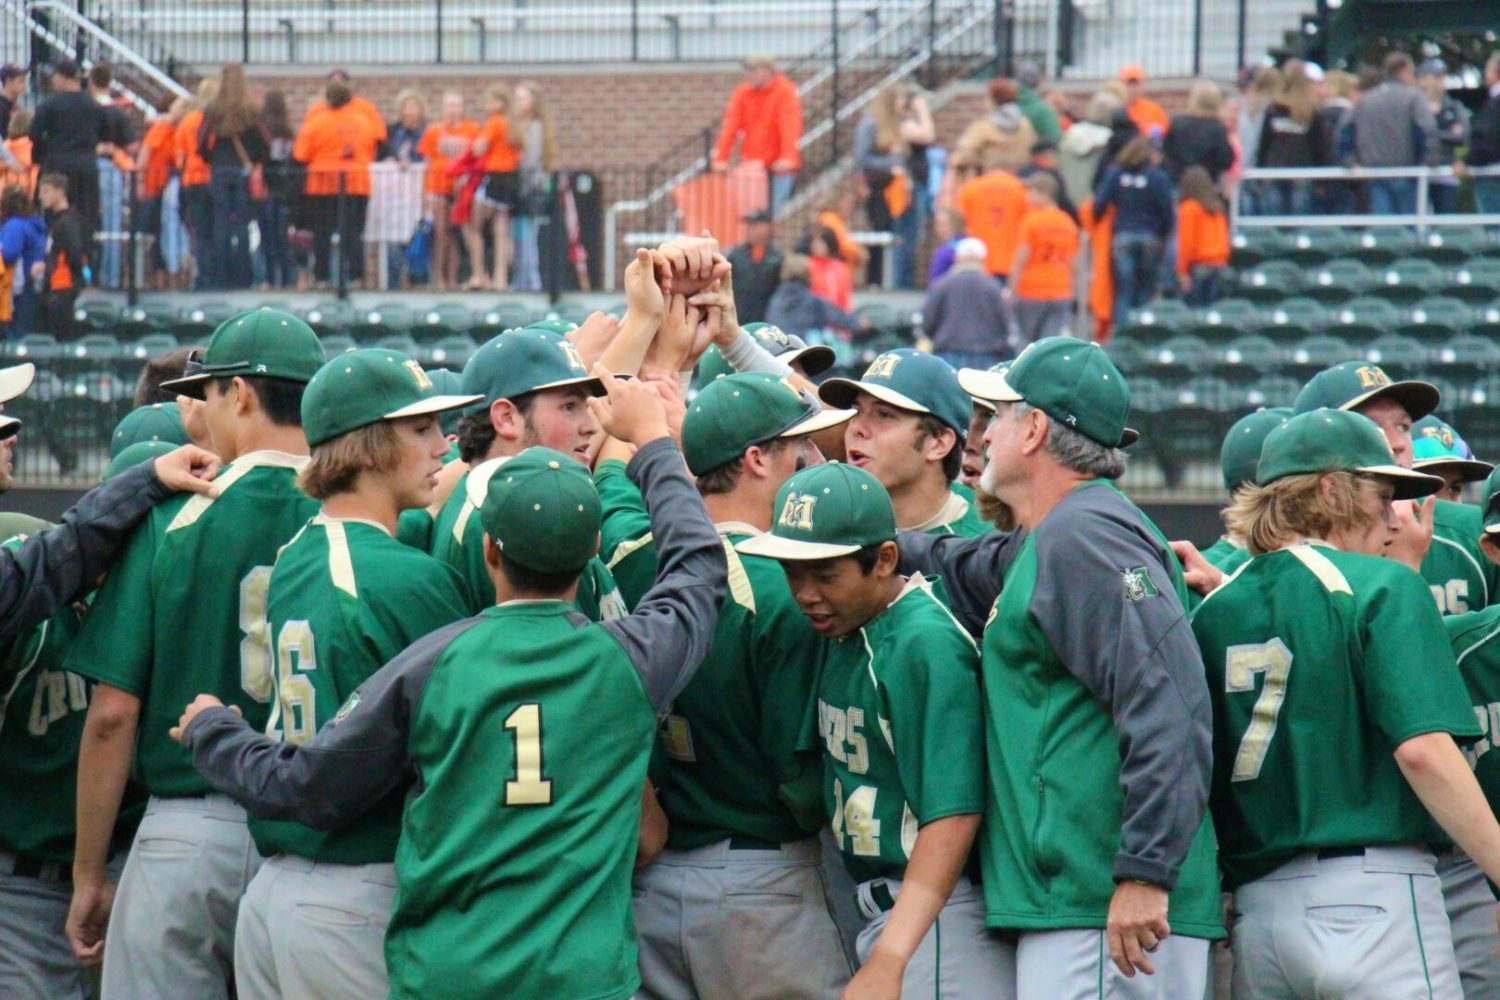 Devin Comes pitches MCC to a semifinal victory, setting up a state title showdown with Centreville on Saturday